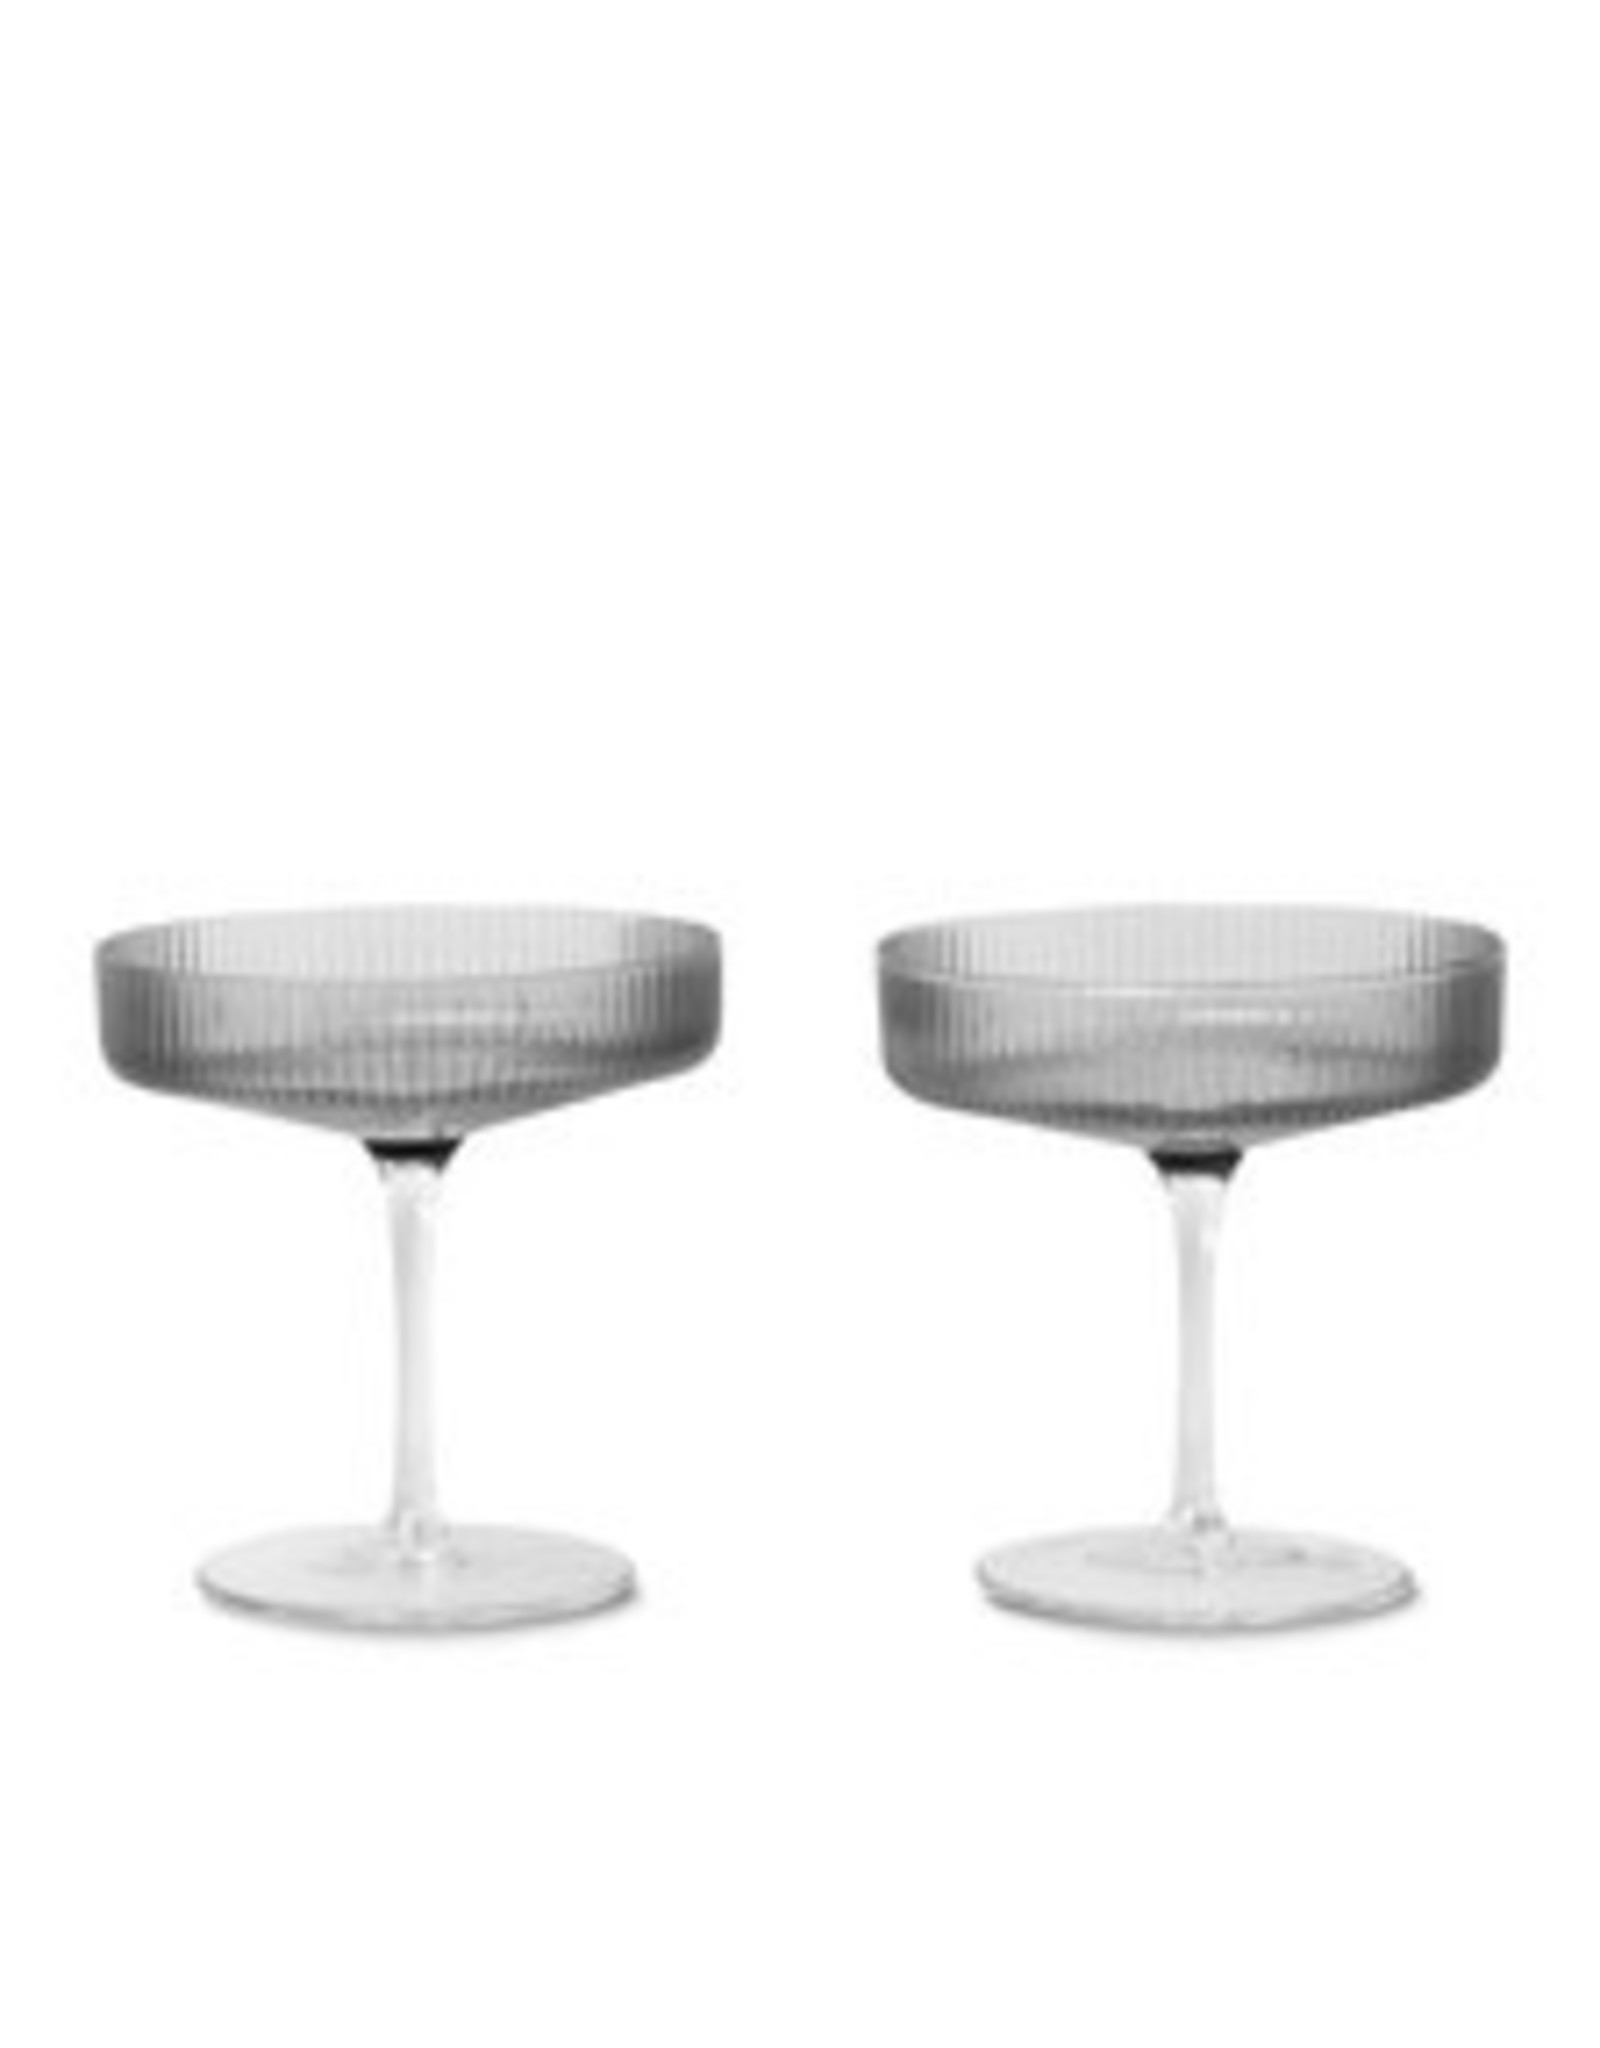 Ferm LIVING ferm LIVING Ripple Champagne Saucer smoked grey